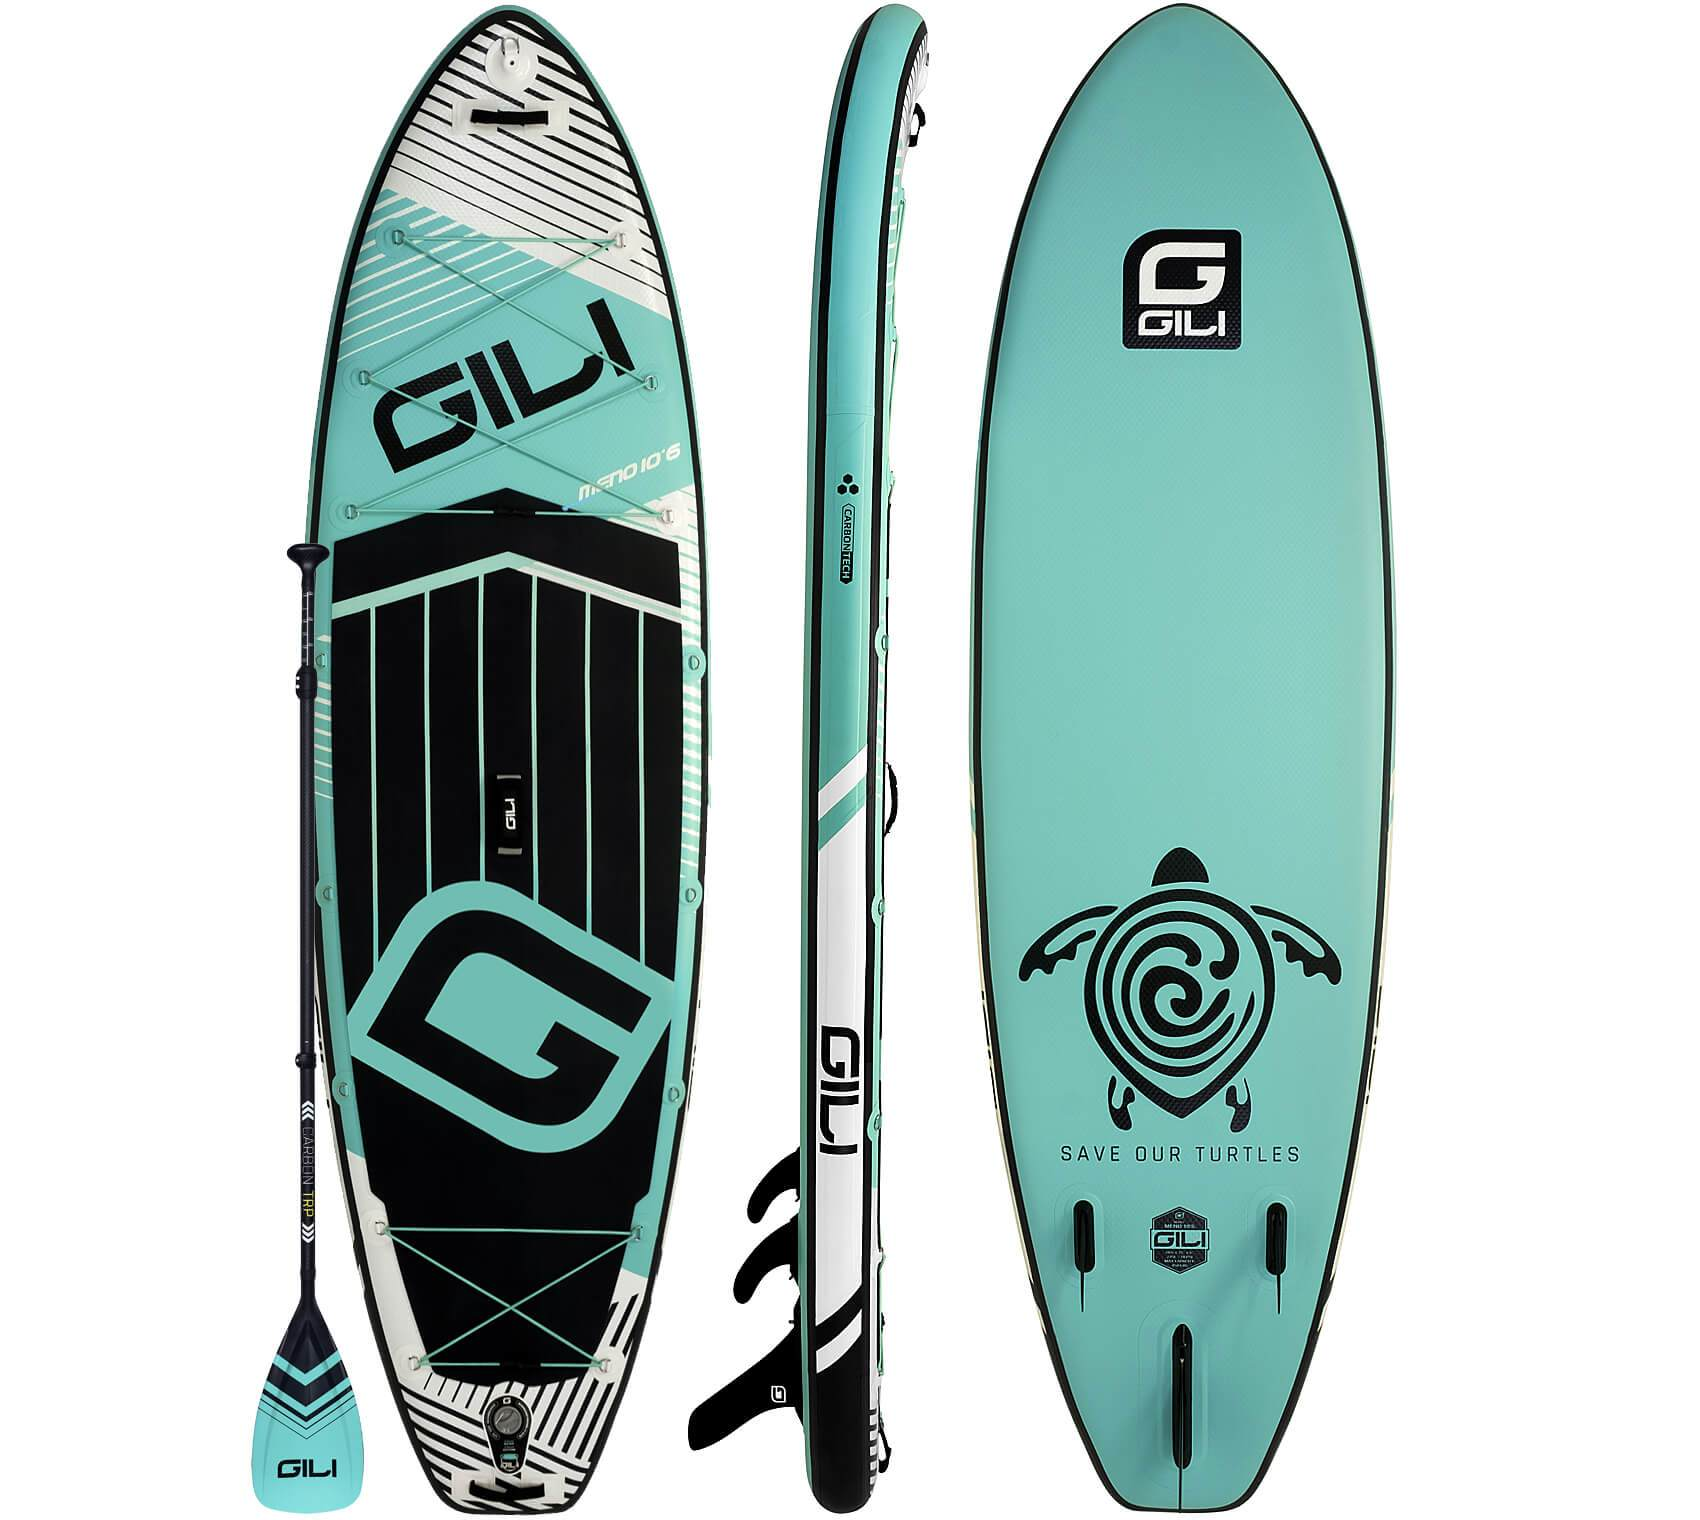 GILI Meno Inflatable Stand Up Paddle Board